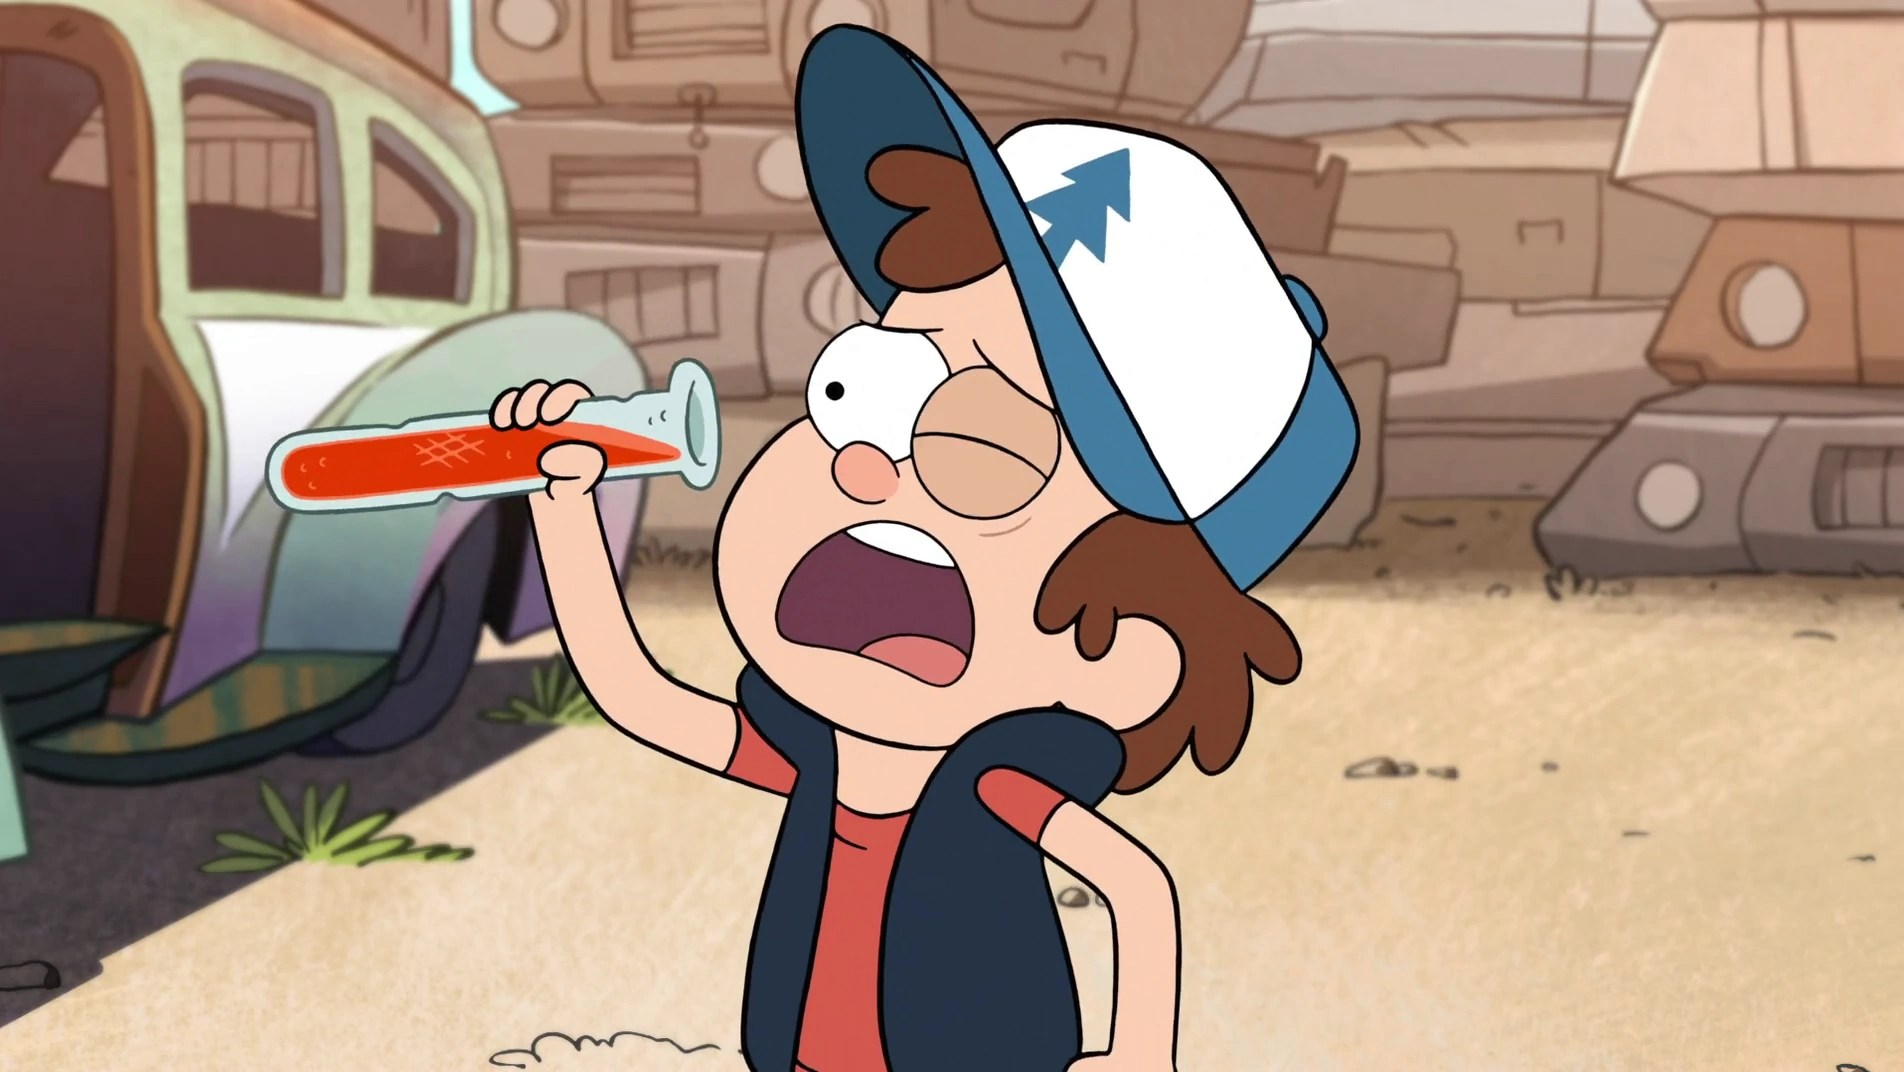 20 Gravity Falls Voice Over Fail Pictures And Ideas On Meta Networks